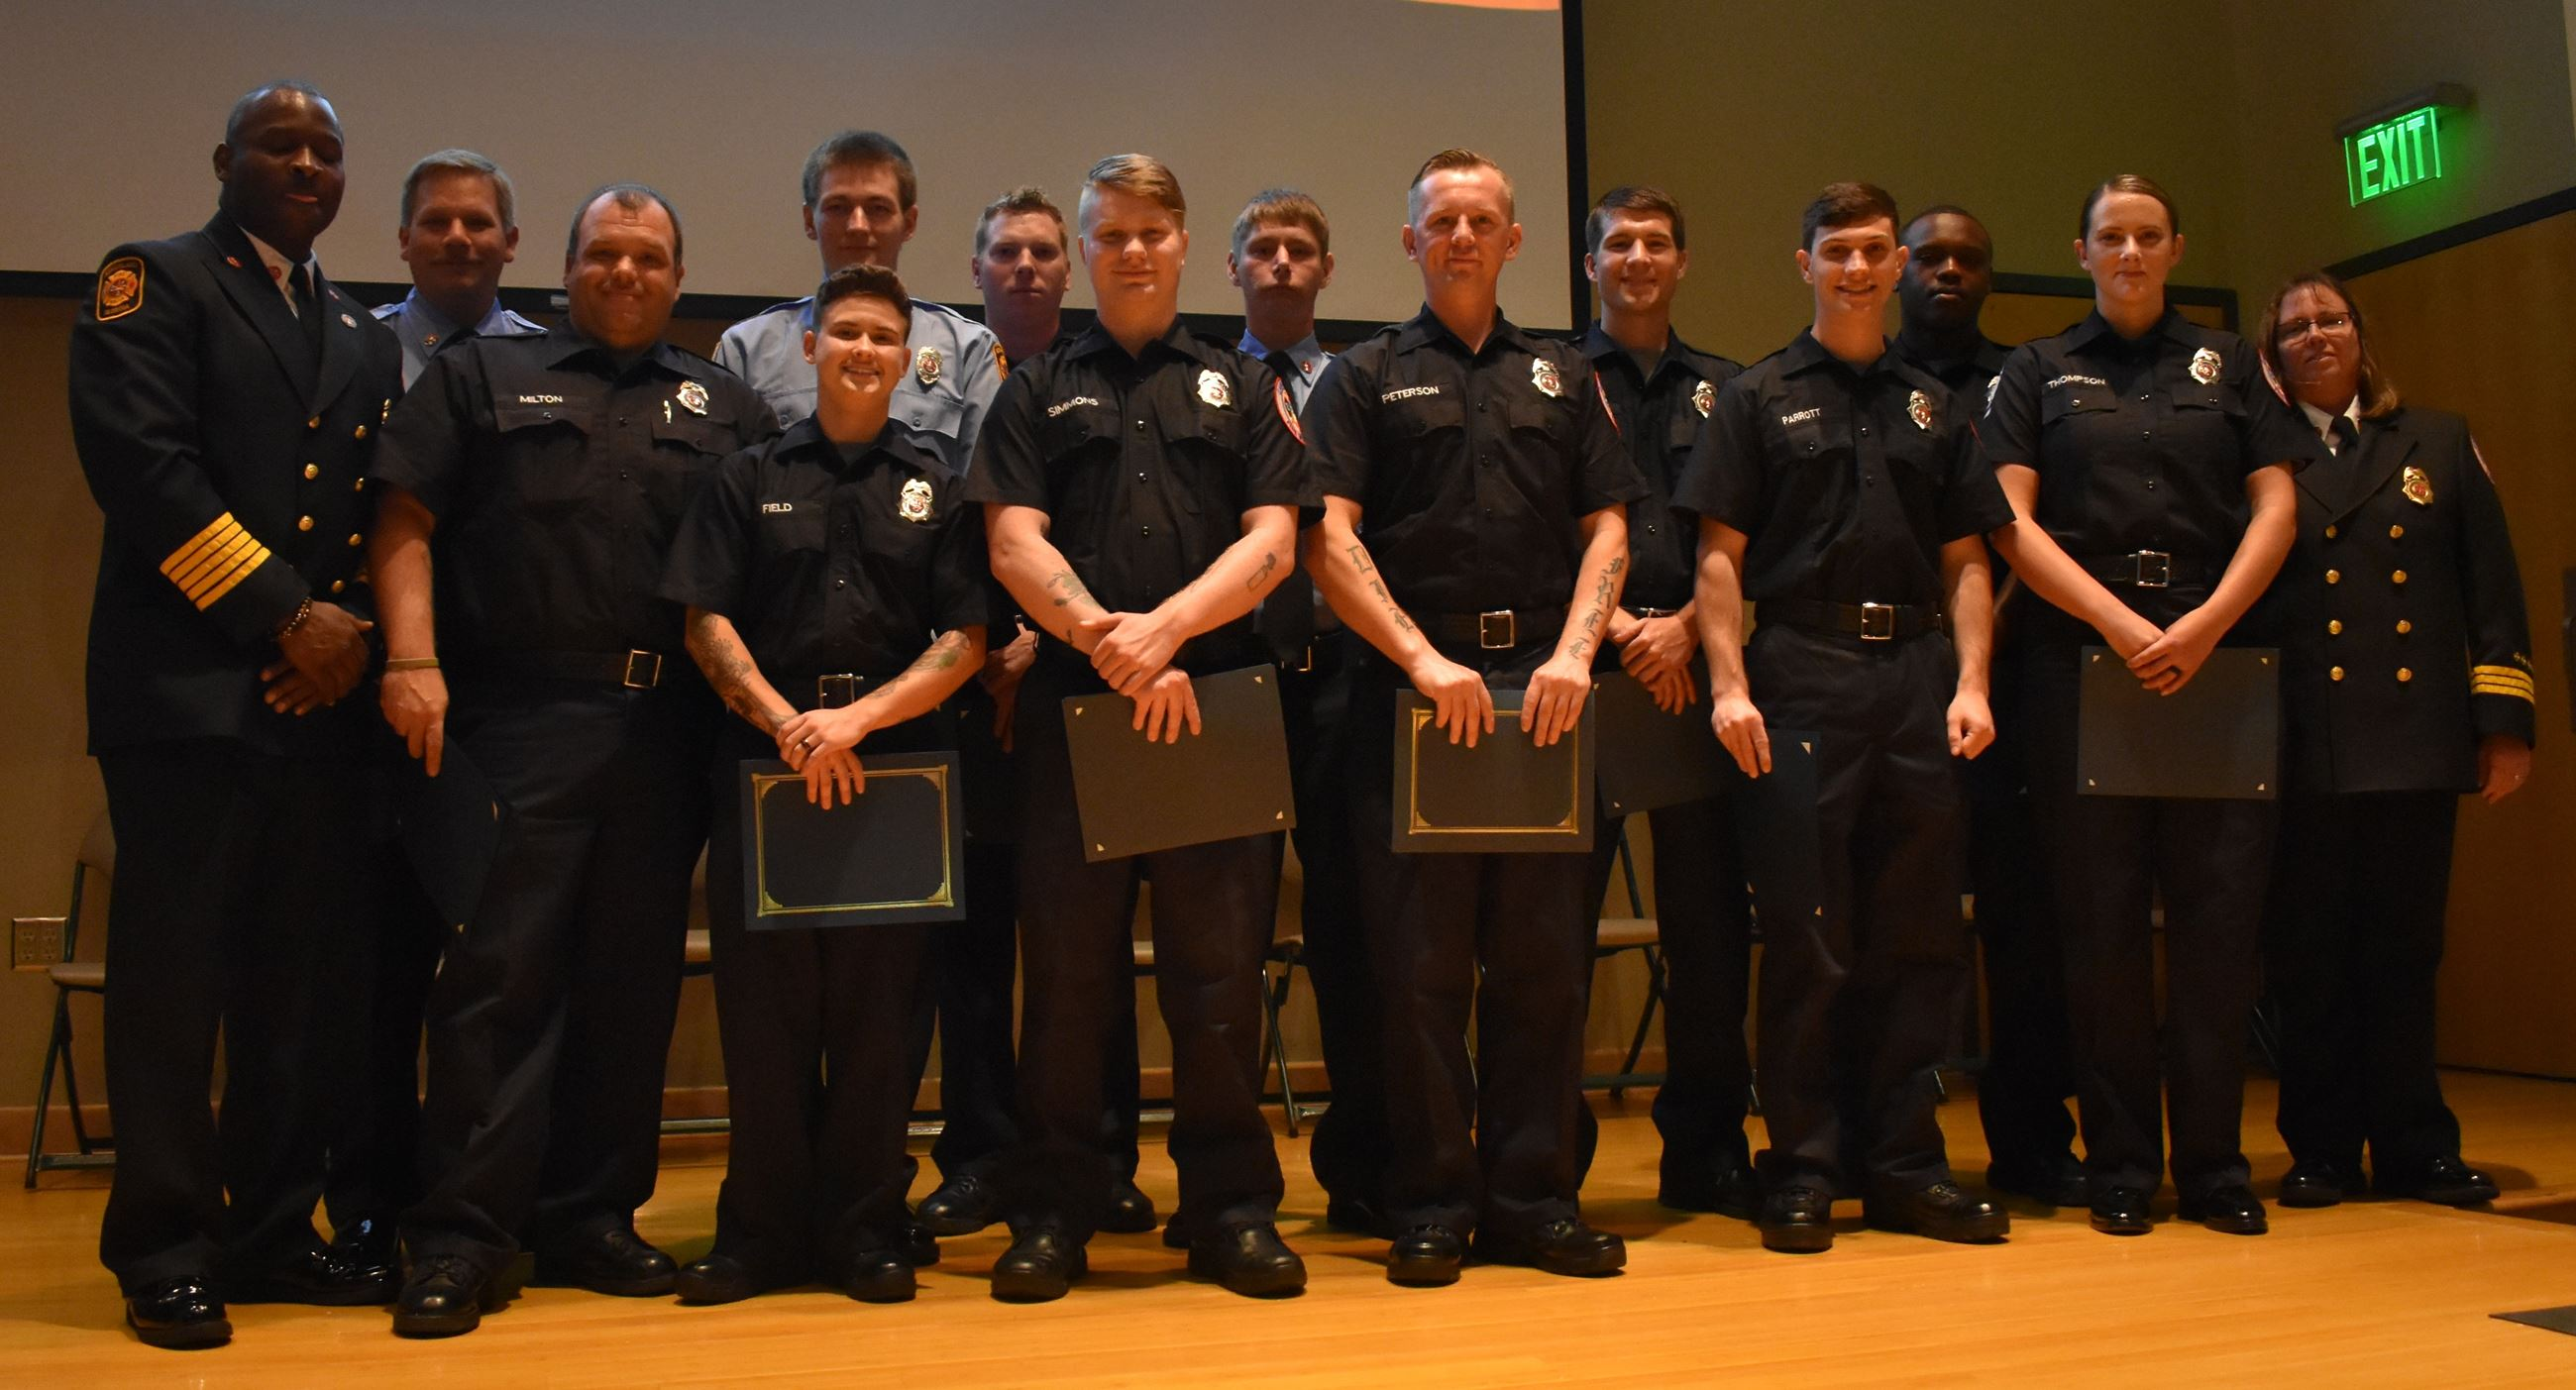 Firefighter Recruit Graduates and Camden County Fire Rescue Leadership